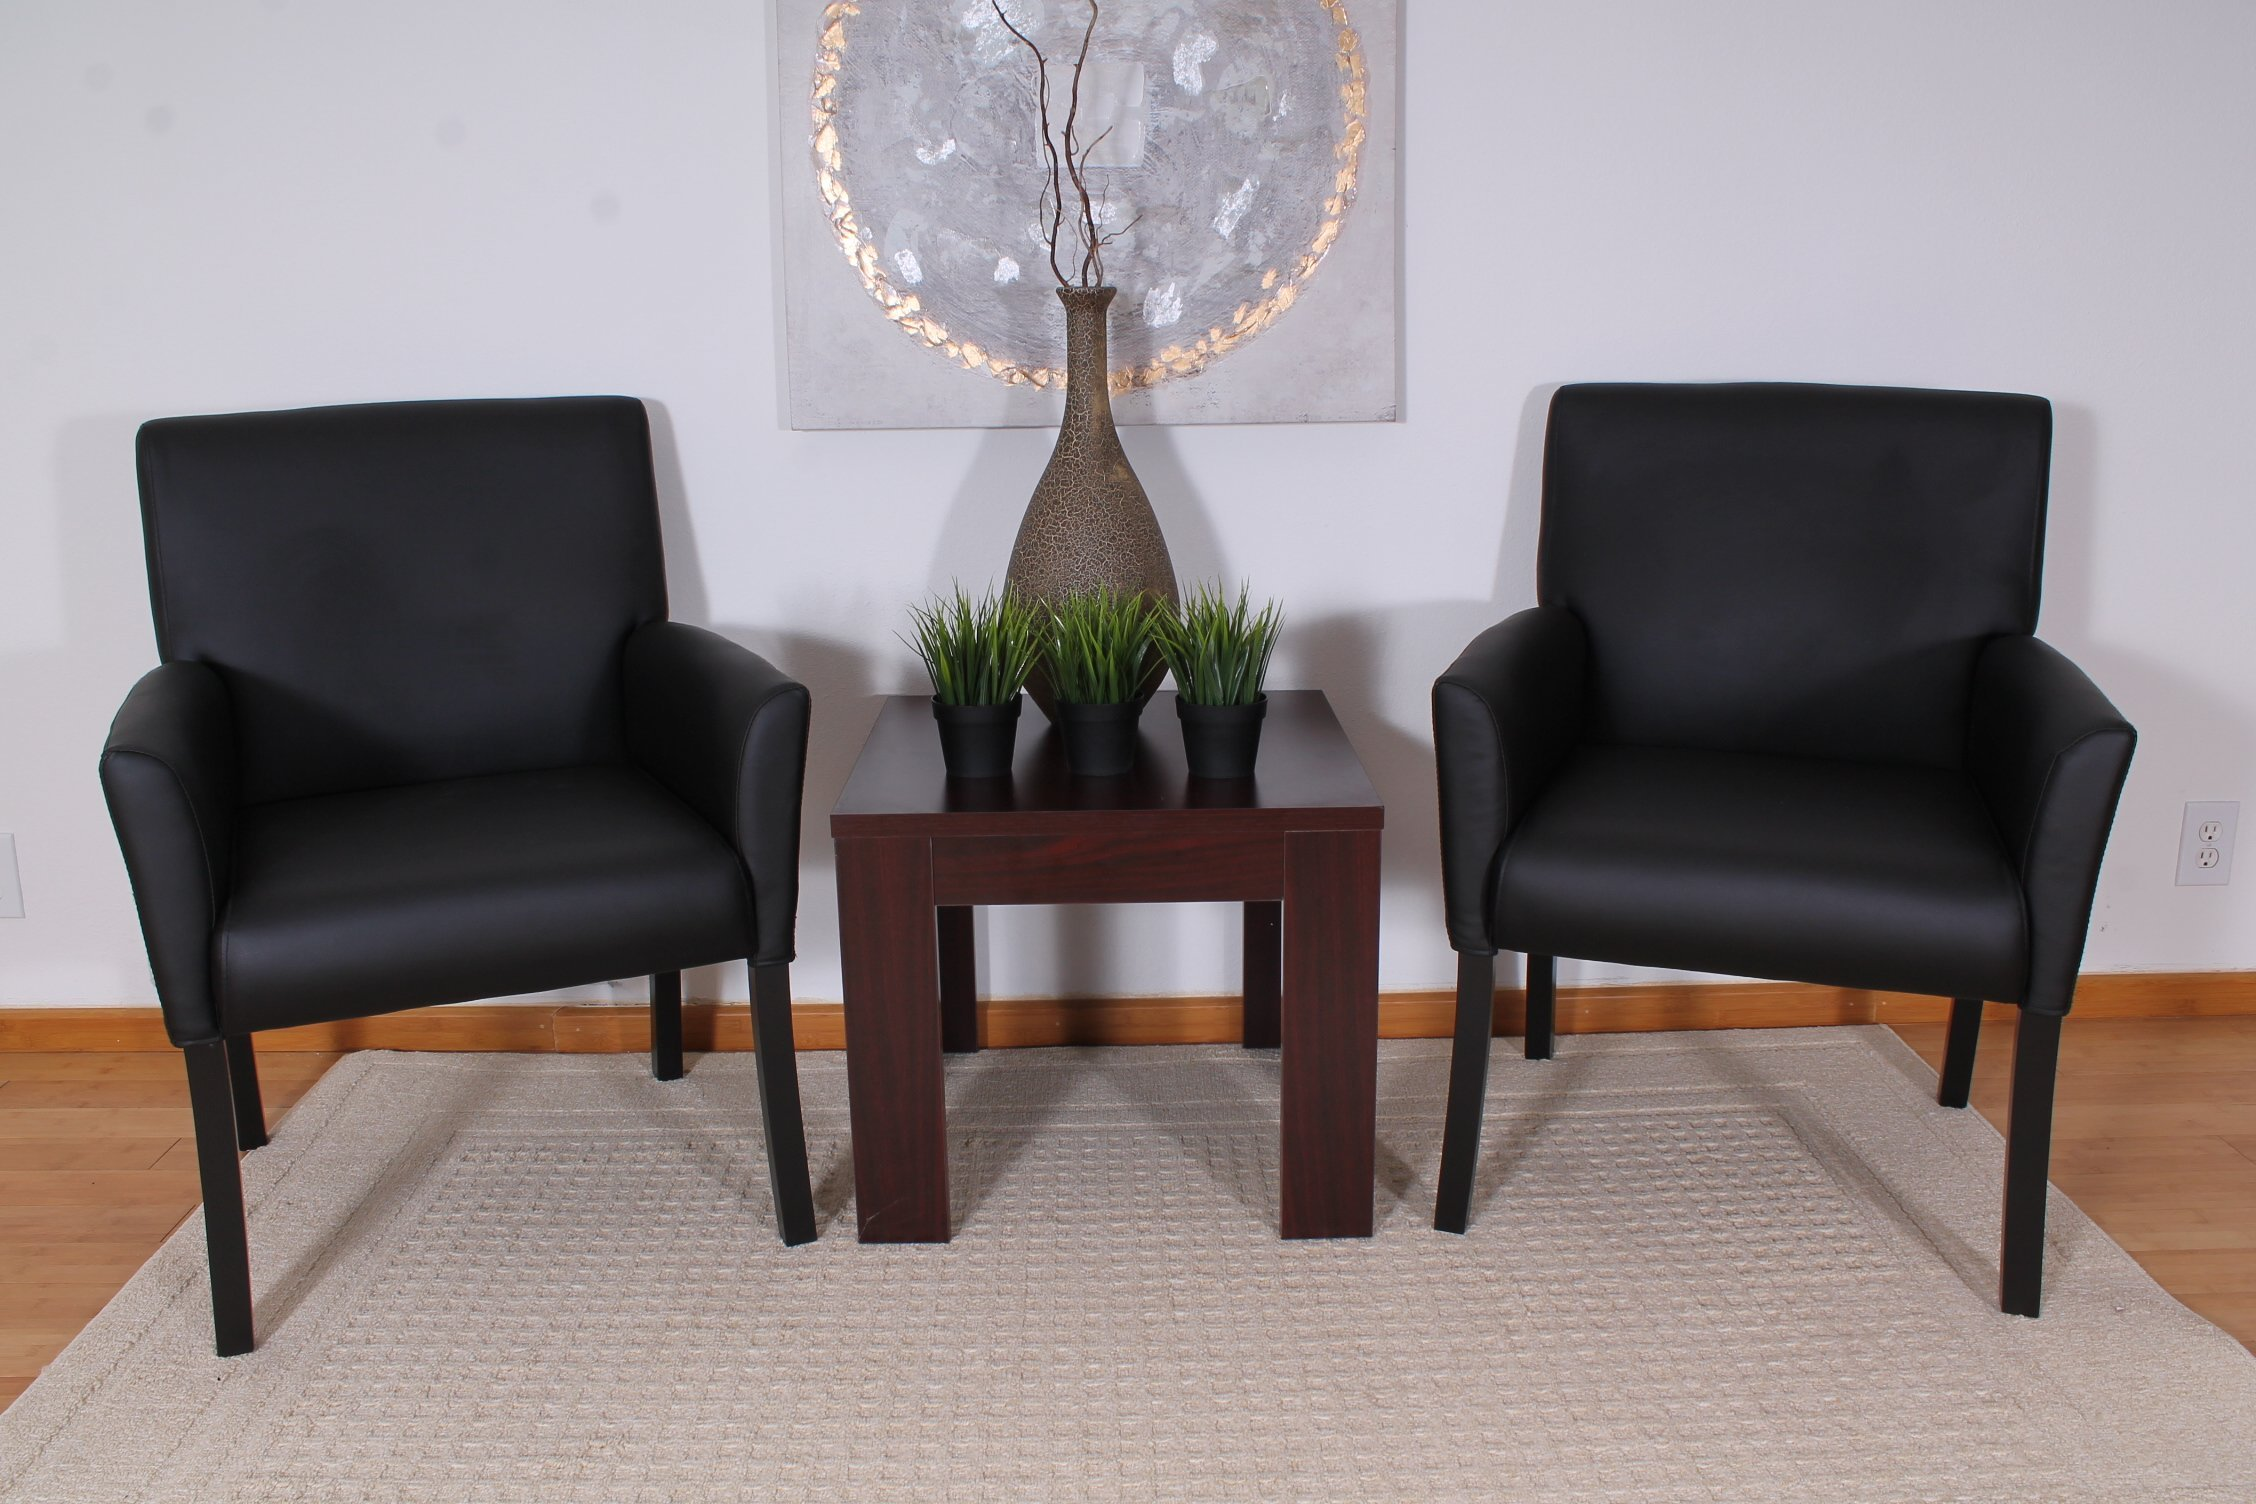 Boss Office Products B639-BK Executive Box Arm Chair with Mahogany Finish in Black by Boss Office Products (Image #2)